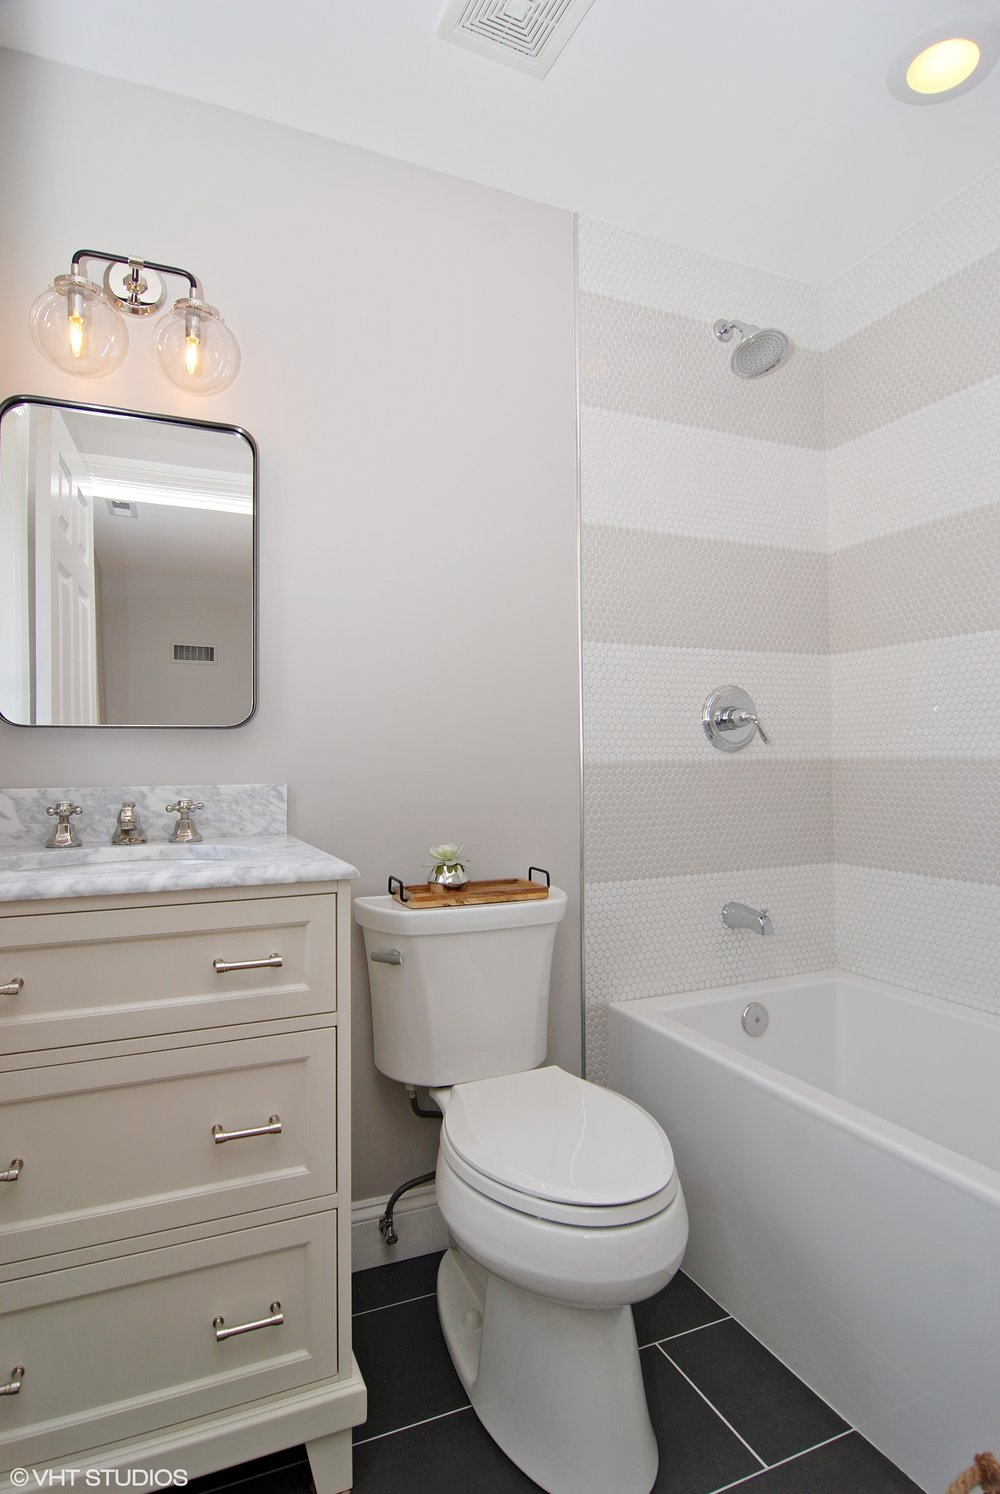 21_1307AshlandAve_8001_Bathroom_HiRes.jpg